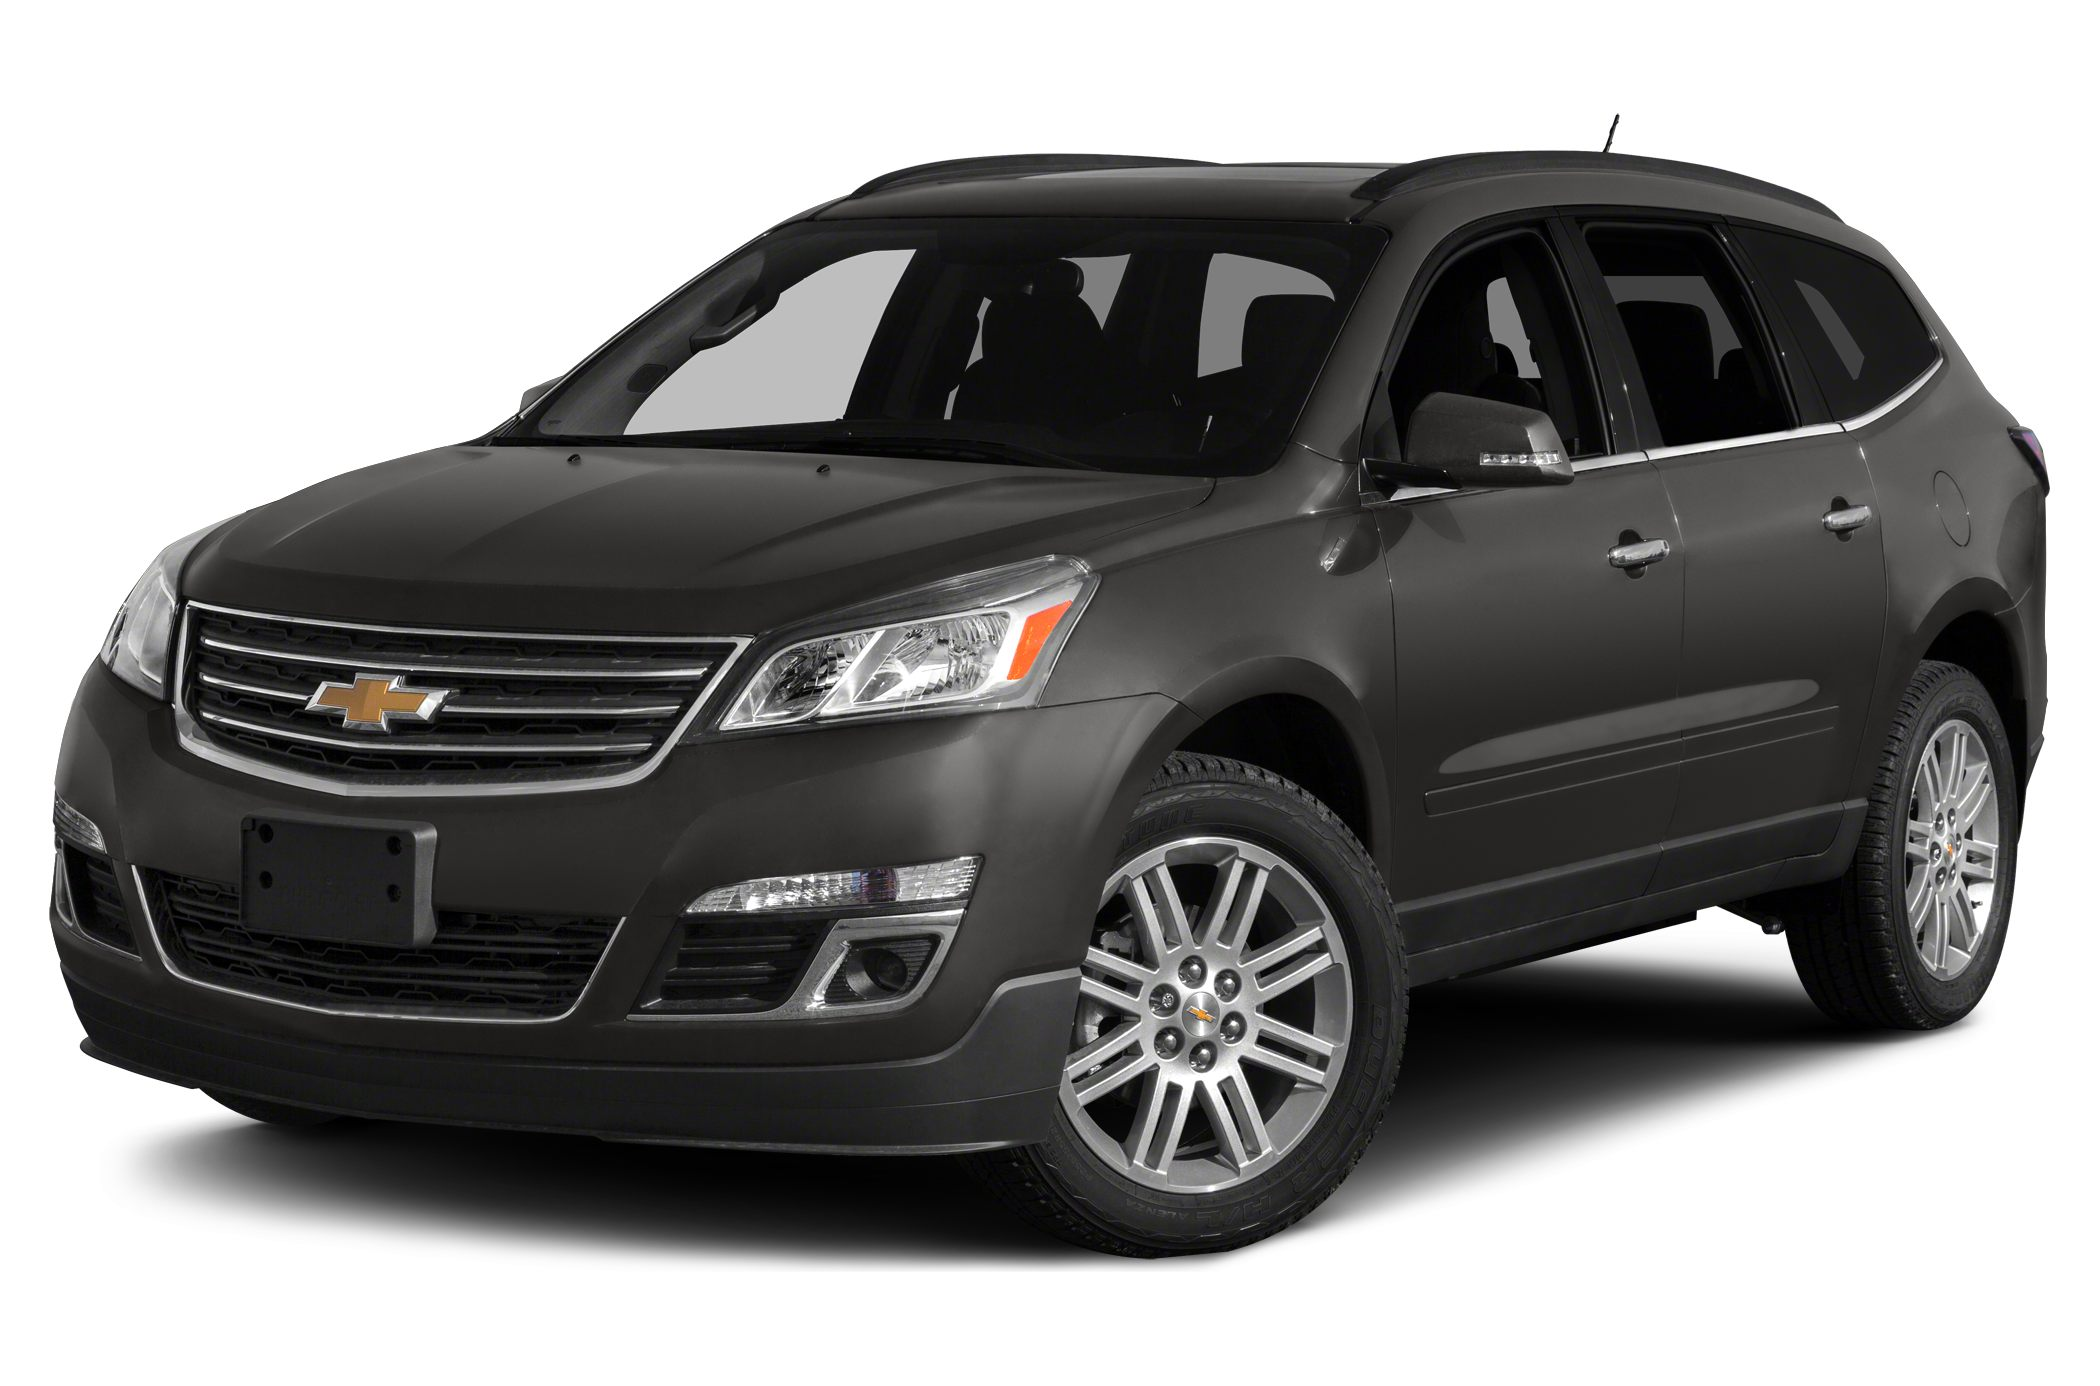 2015 Chevrolet Traverse LTZ SUV for sale in Mentor for $47,255 with 0 miles.